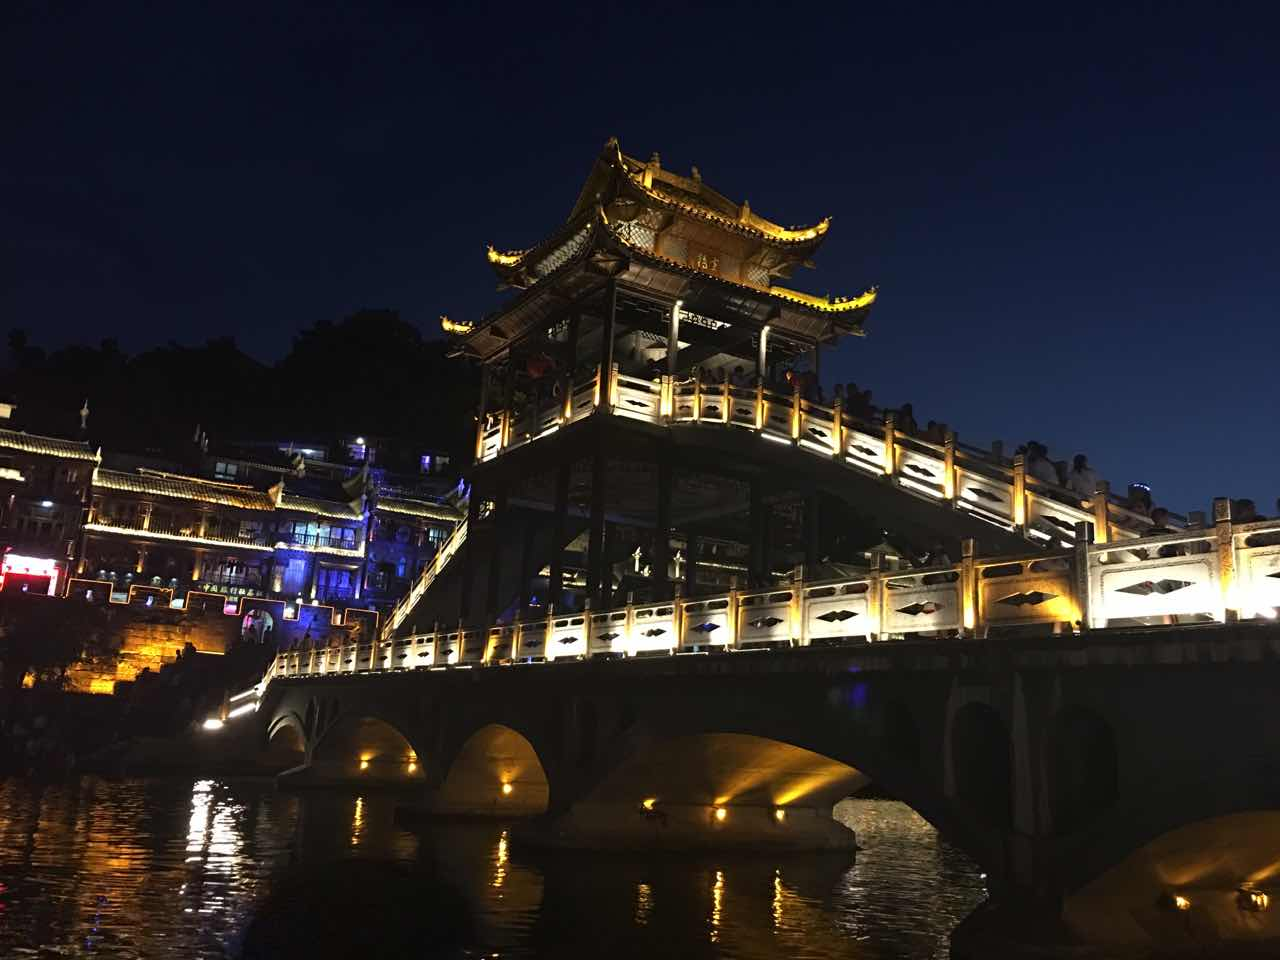 Pagoda at night in Fenghuang ancient town.